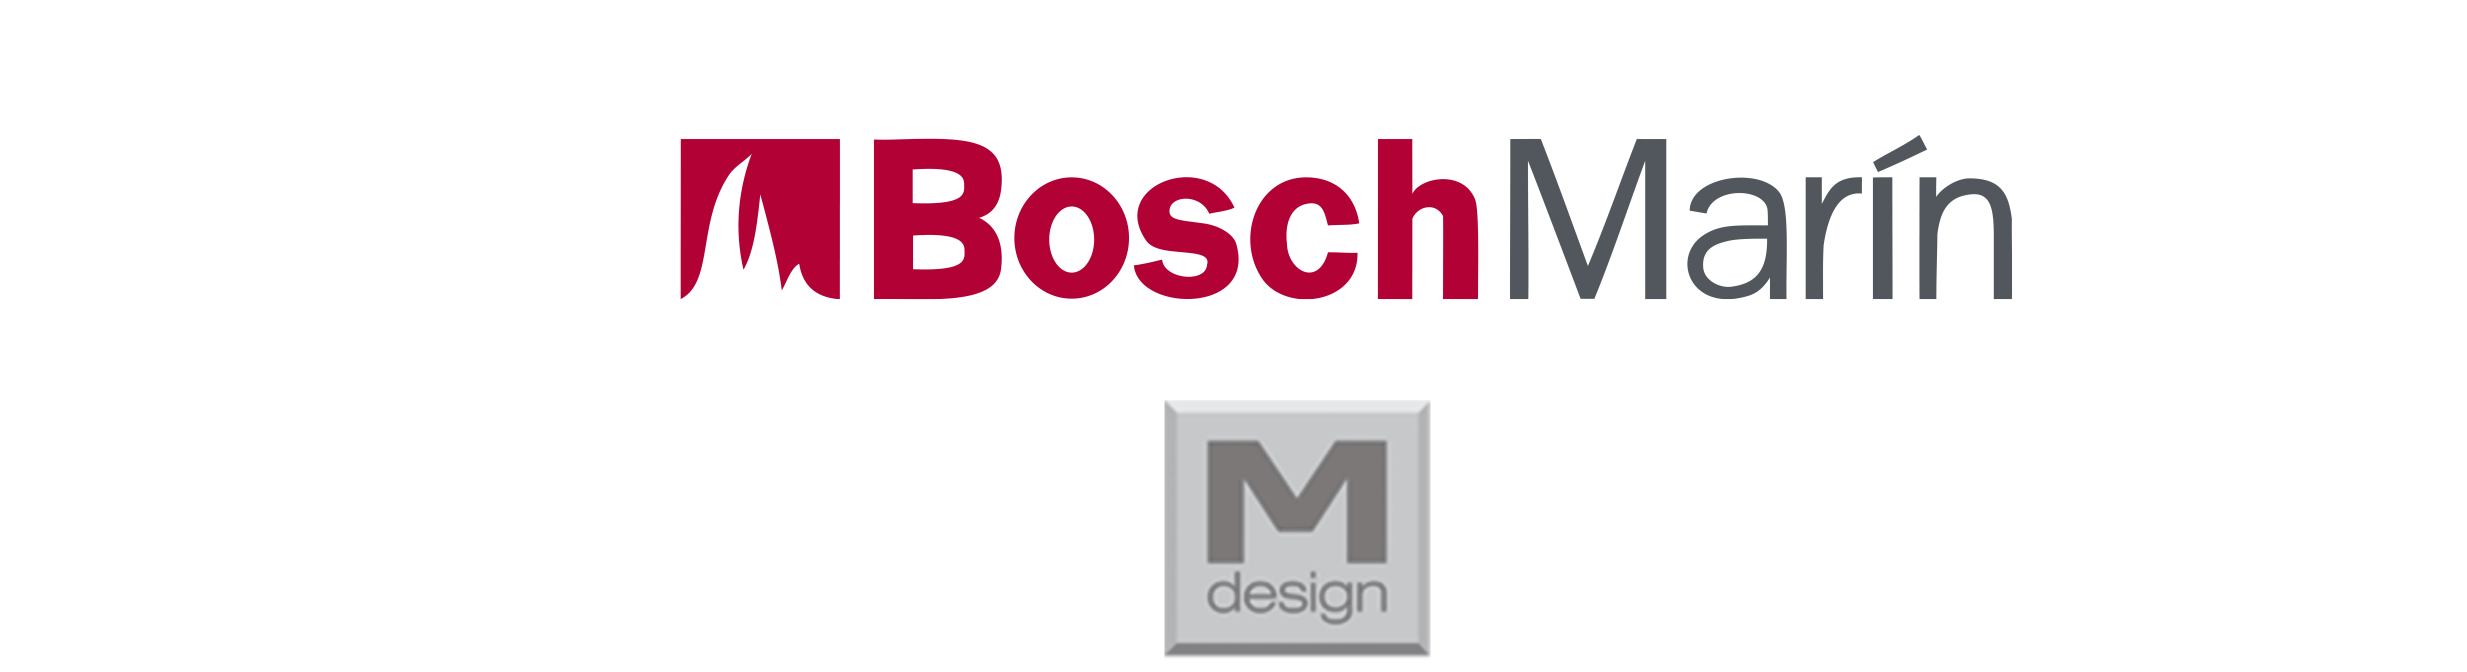 Logo Bosch Marin and MDesign